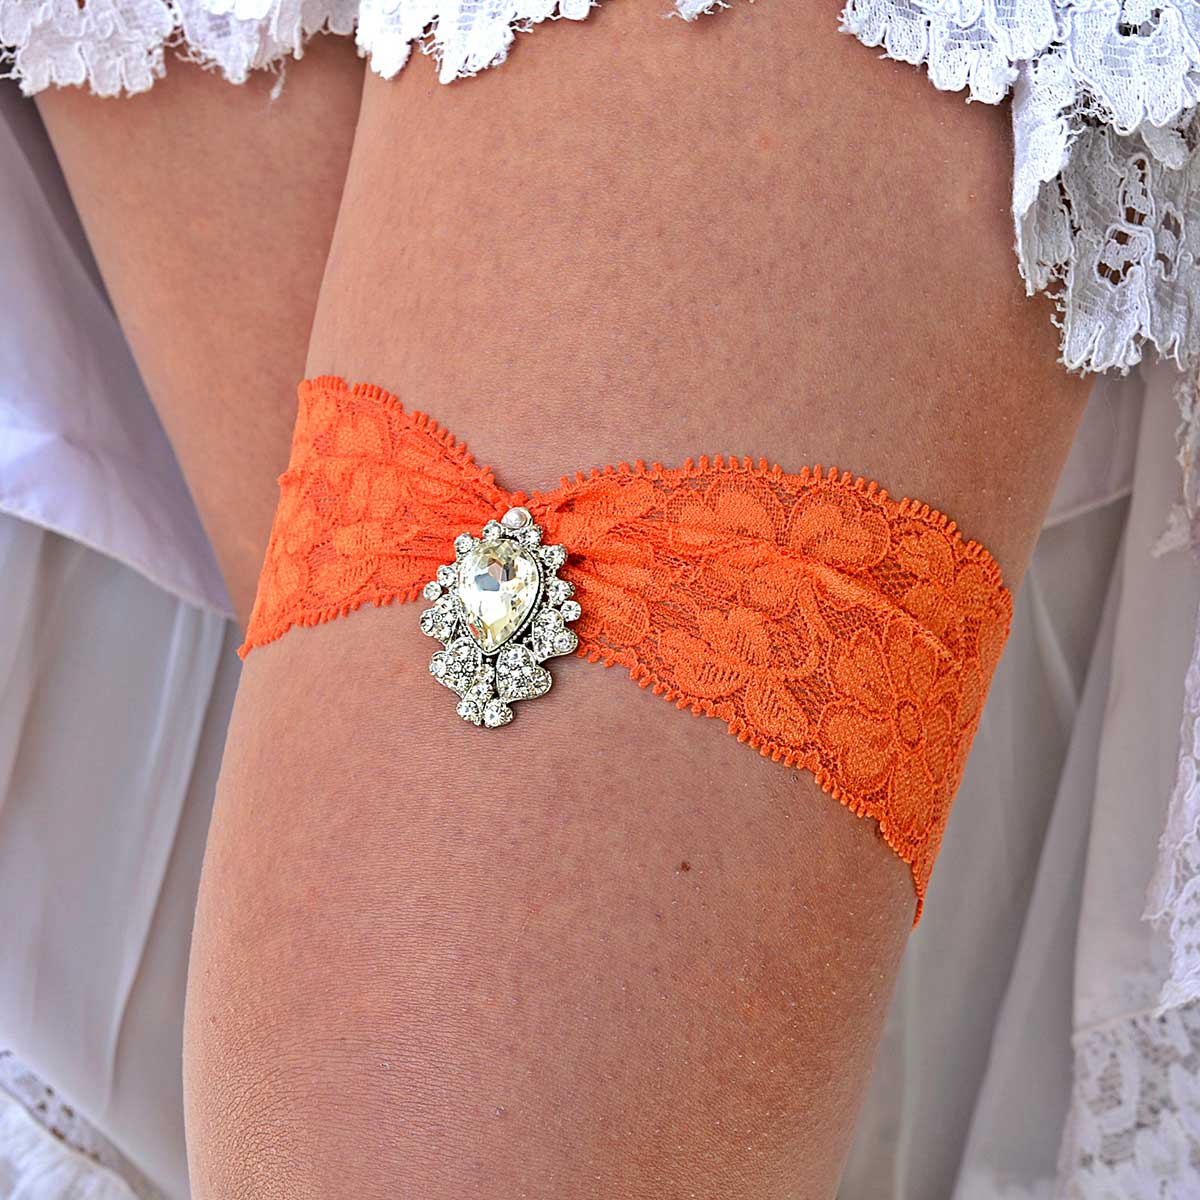 Orange Bridal Garter Belt Set With Clear Rhinestones Jewel - Wedding Garter - SuzannaM Designs